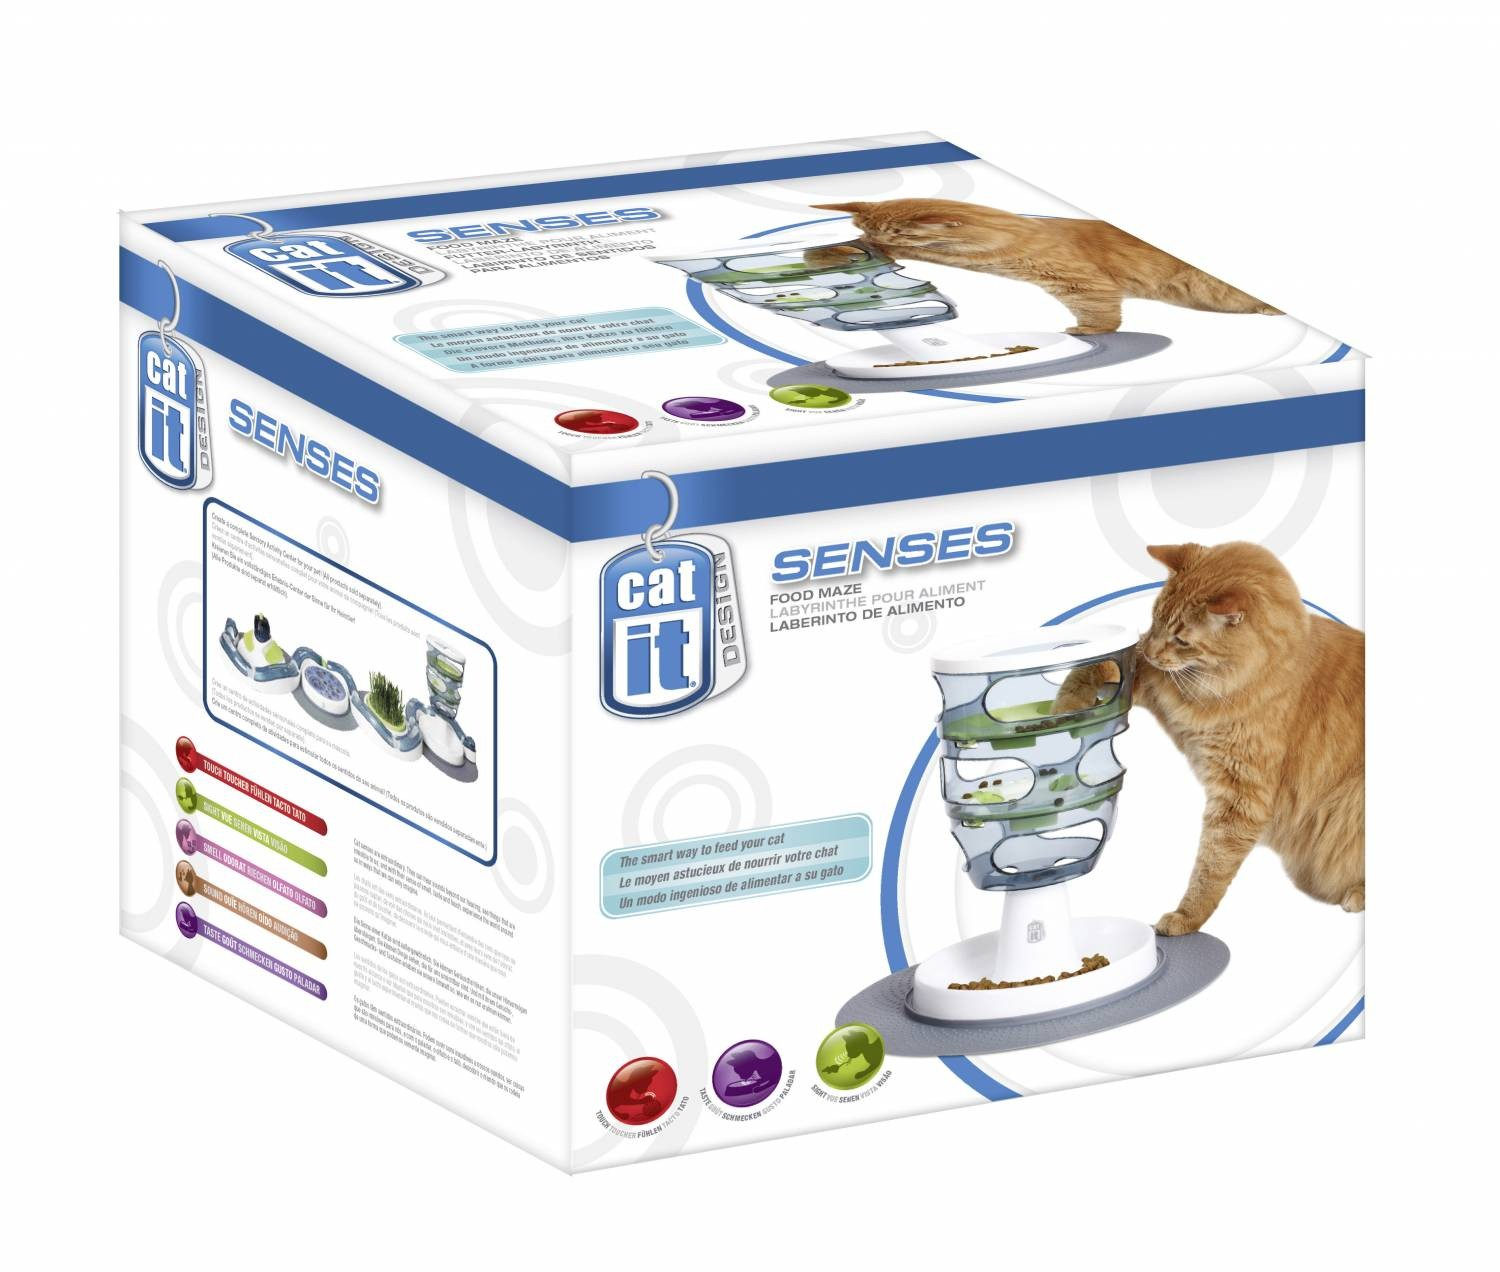 Cat it Senses Food Maze voor de kat